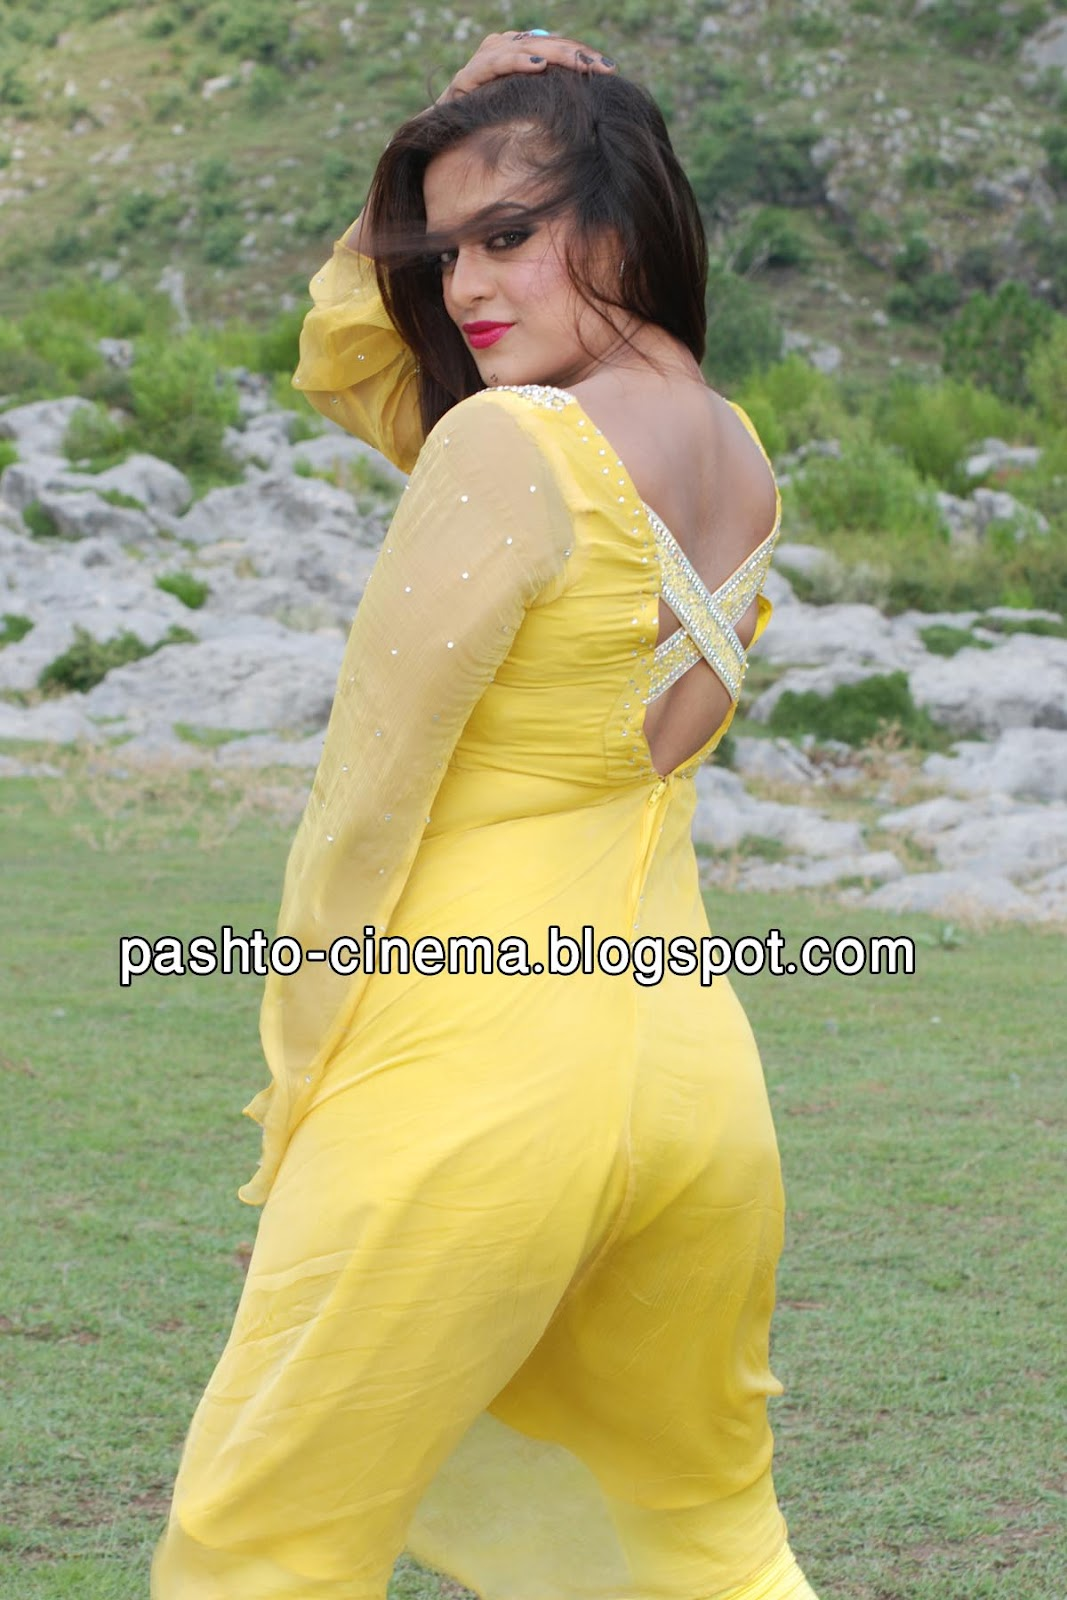 Pashto cinema sobia khan new pictures in film quot qasam quot yellow dress